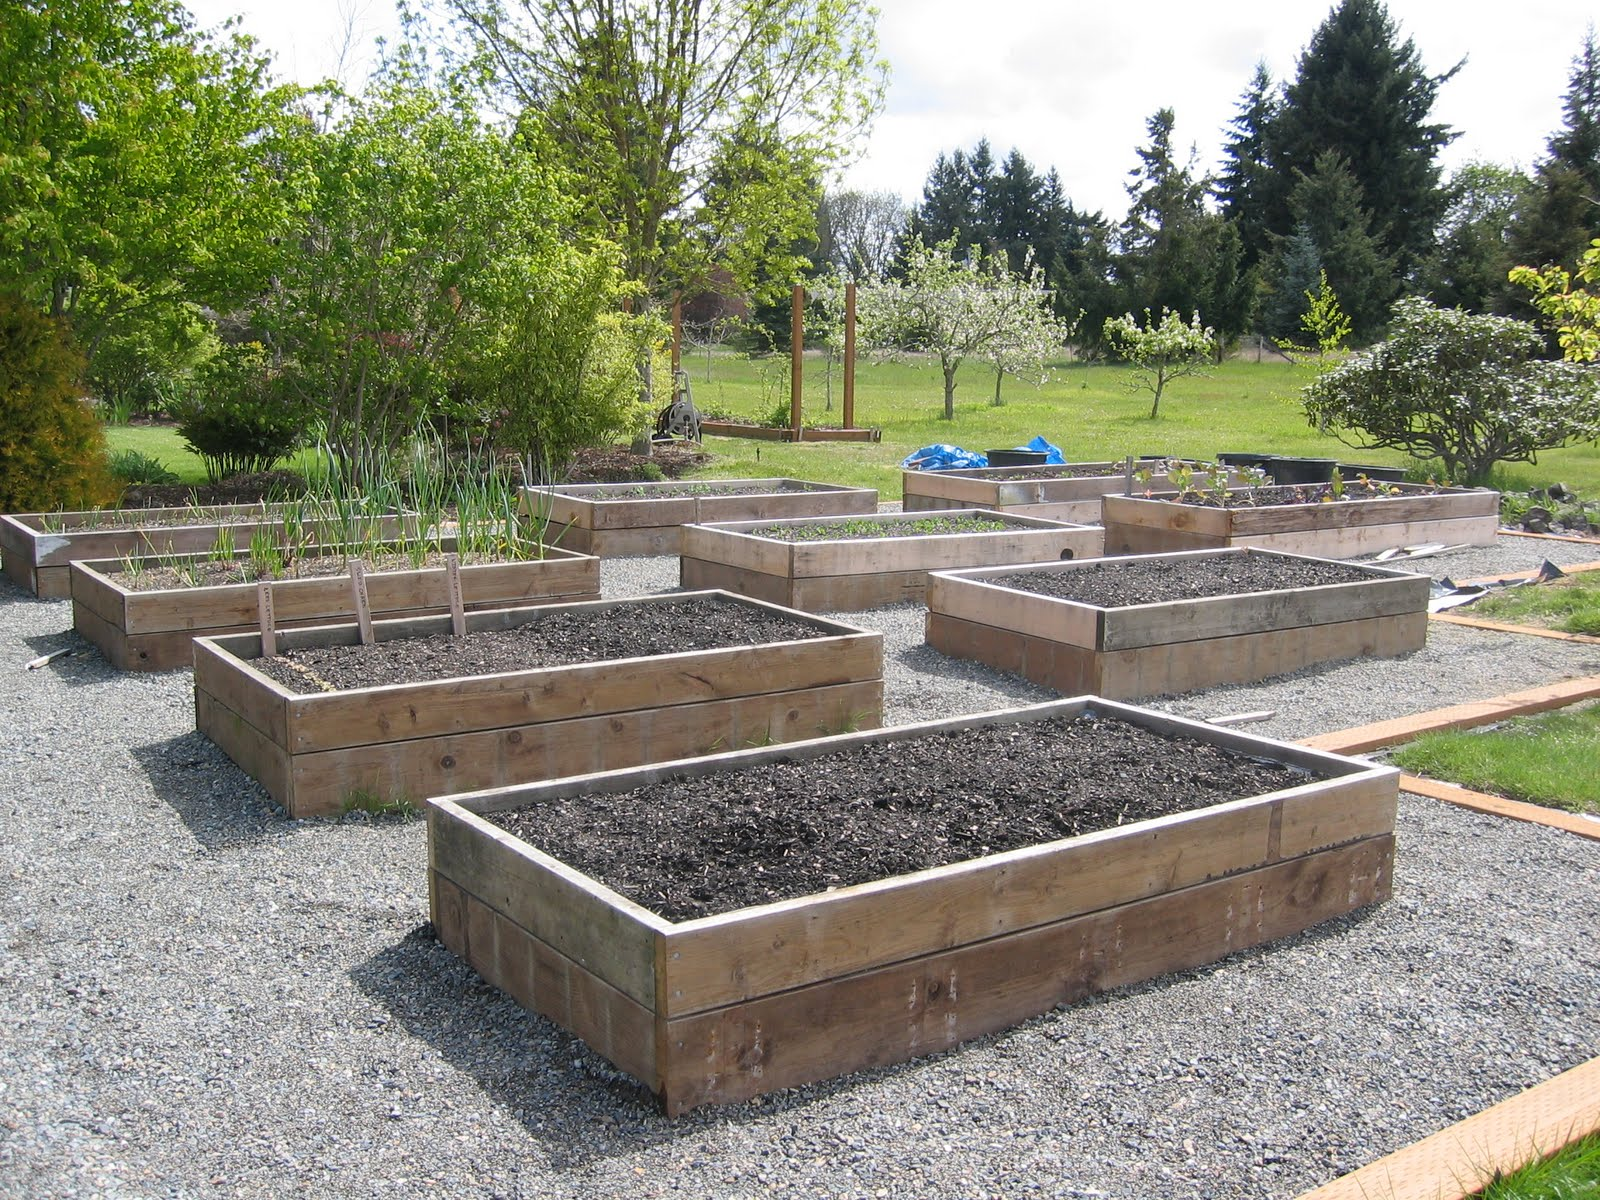 The tacoma kitchen garden journal raised vegetable beds for Creating a vegetable garden